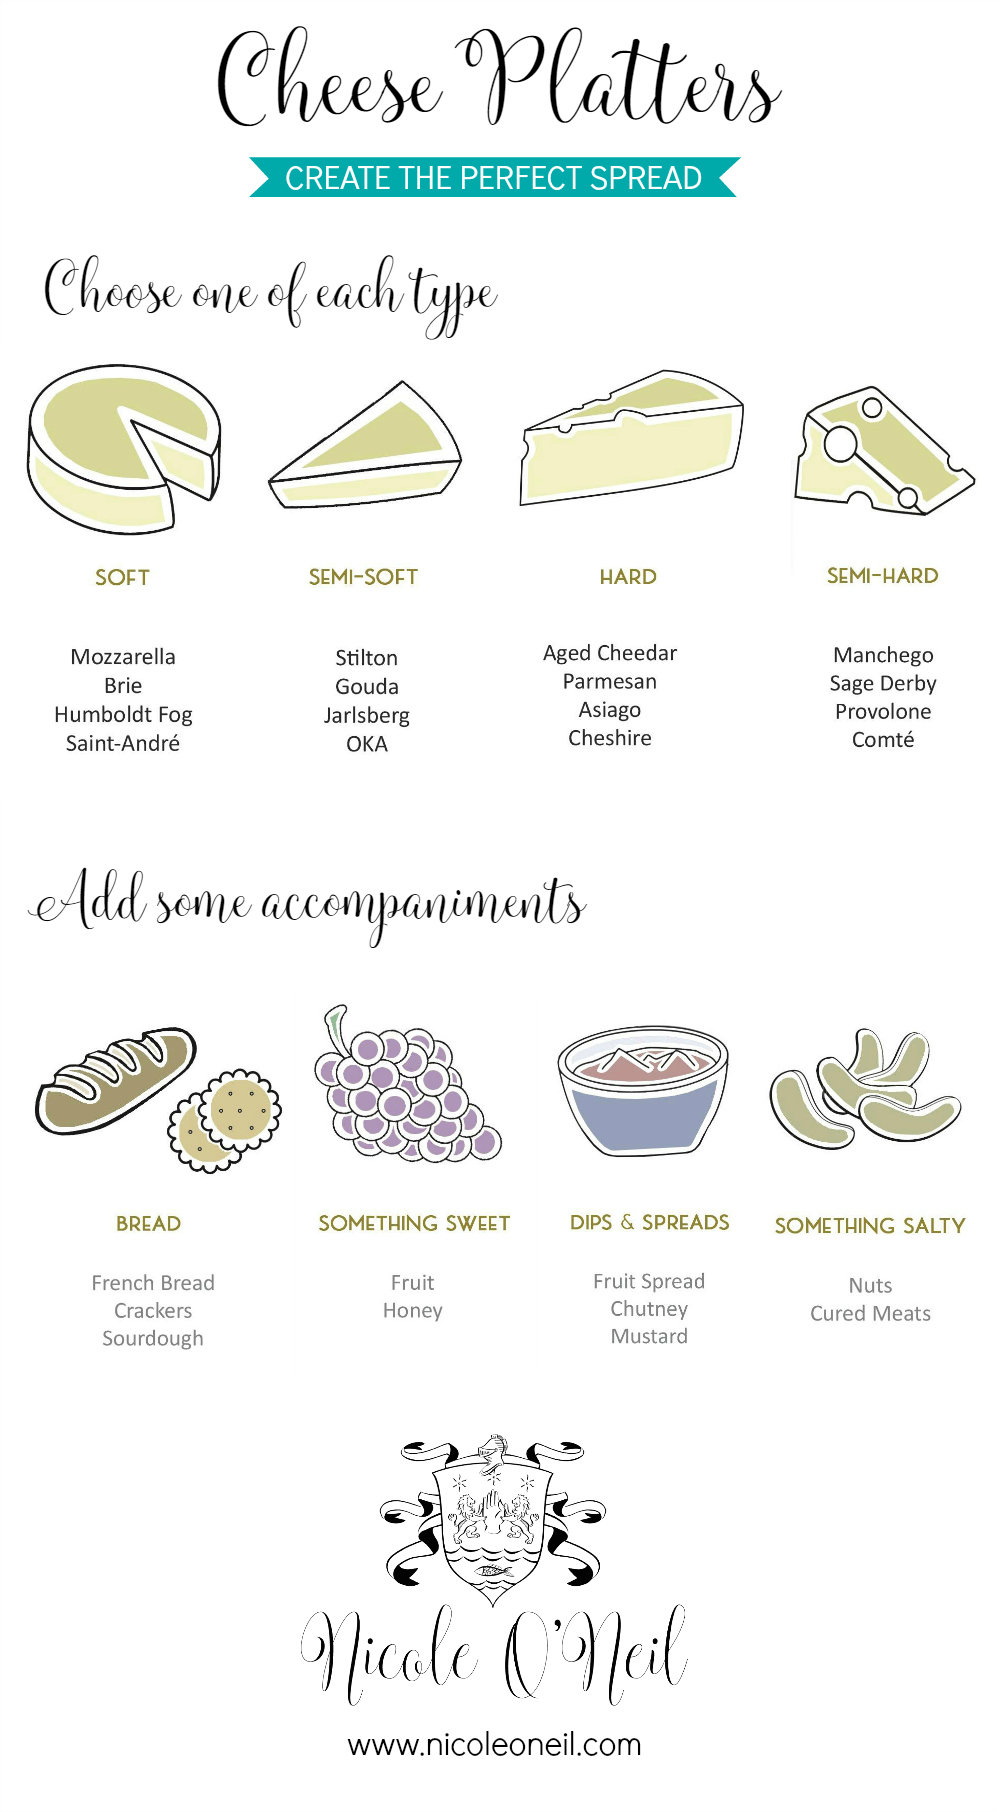 Easy DIY Guide on How to Make a Cheese Platter – Ideas for the best types of cheese and accompaniments for a gourmet cheese display that is perfect for any party, wedding, fancy or casual event – whether big or small. Get more tips for entertaining at nicoleoneil.com